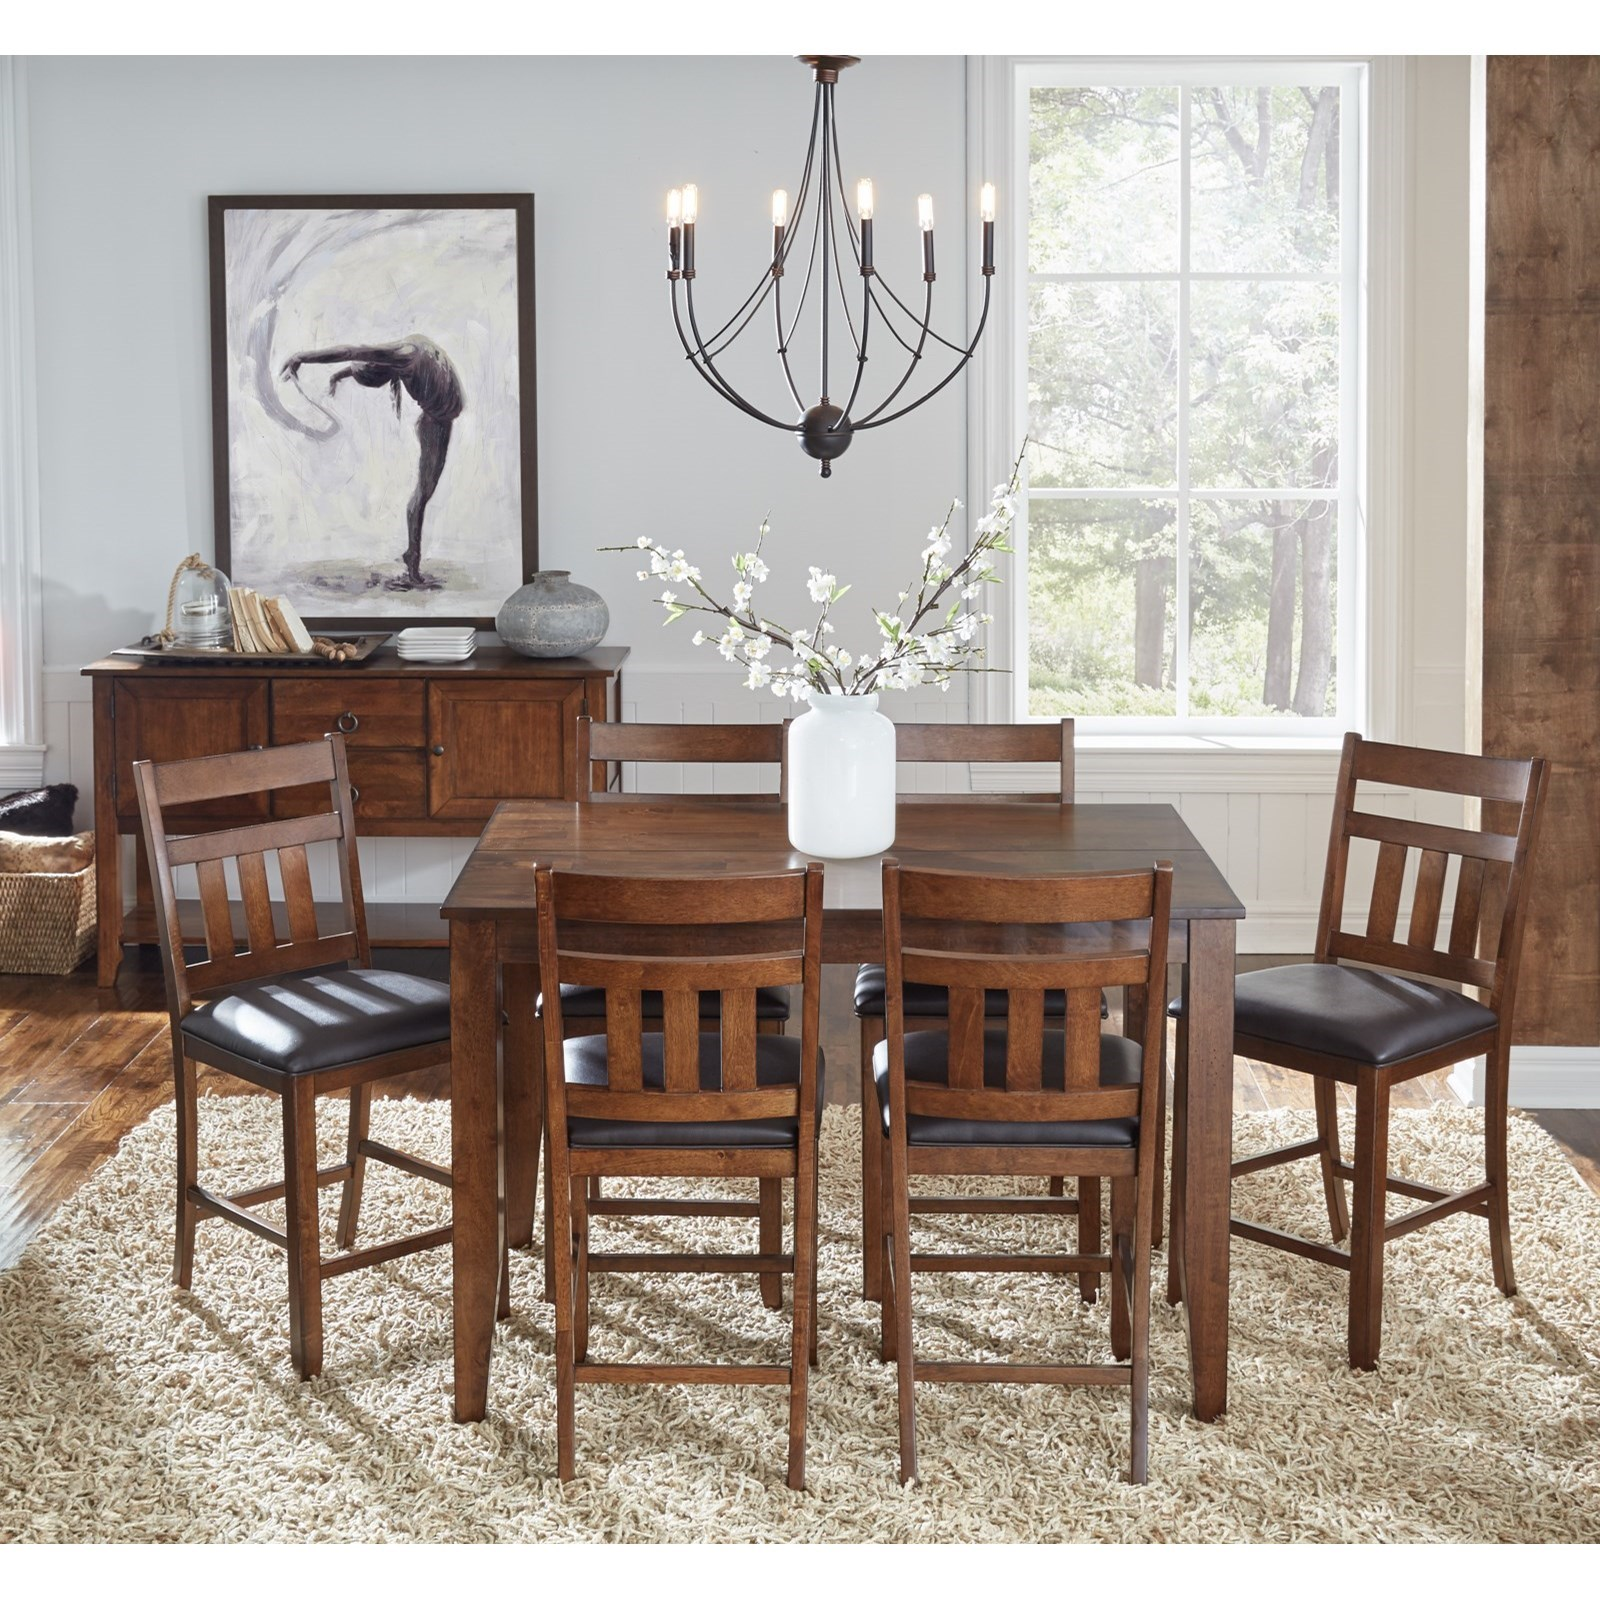 7 Piece Gathering Height Dining Set